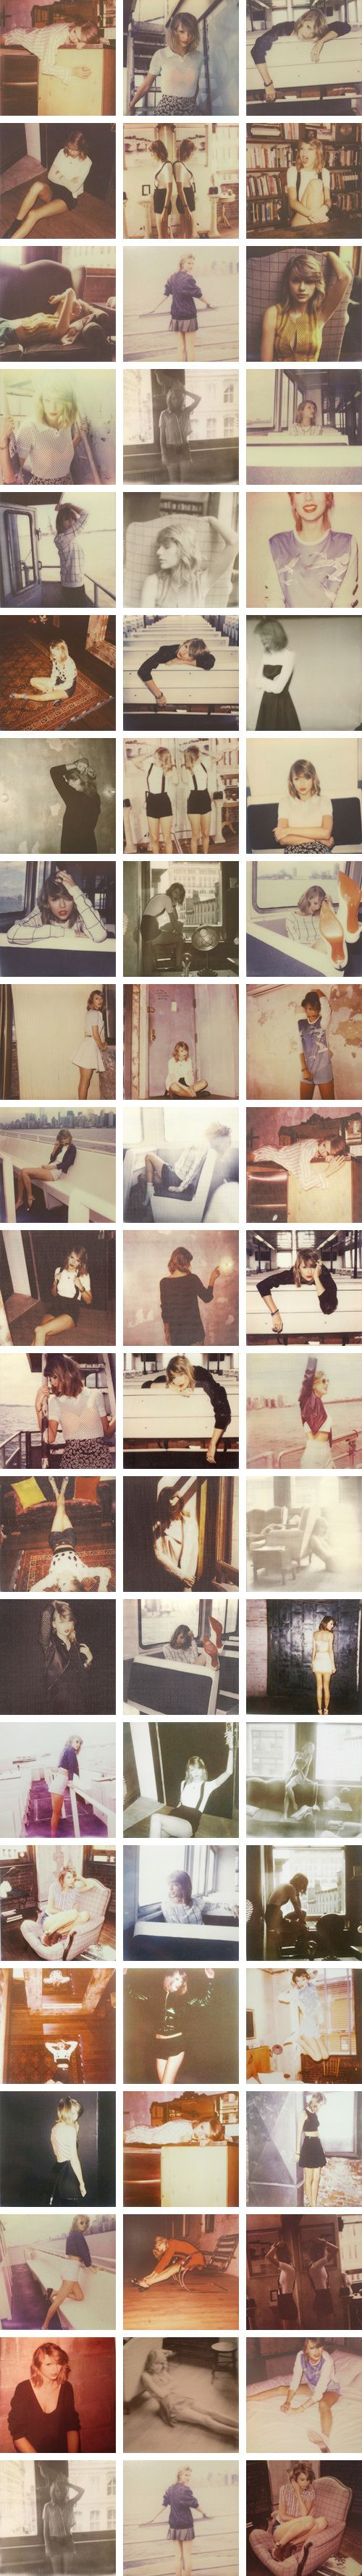 TAYLOR SWIFT 1989 POLAROID THIS ALBUM IS ALL YOU WANT TO HEAR THIS YEAR